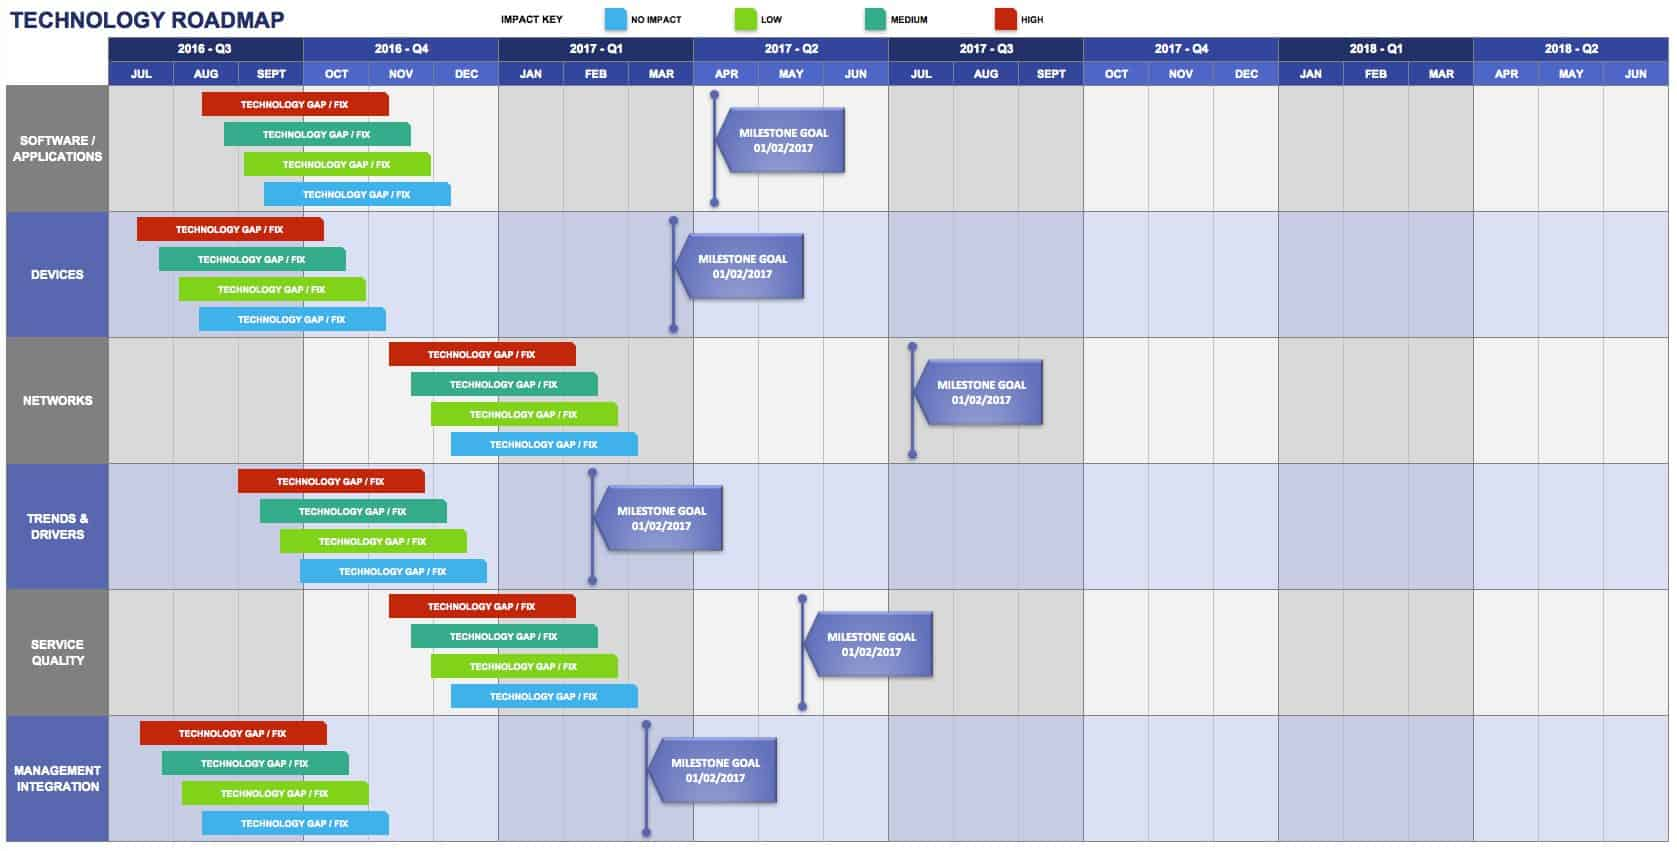 Free Product Roadmap Templates Smartsheet - Website roadmap template